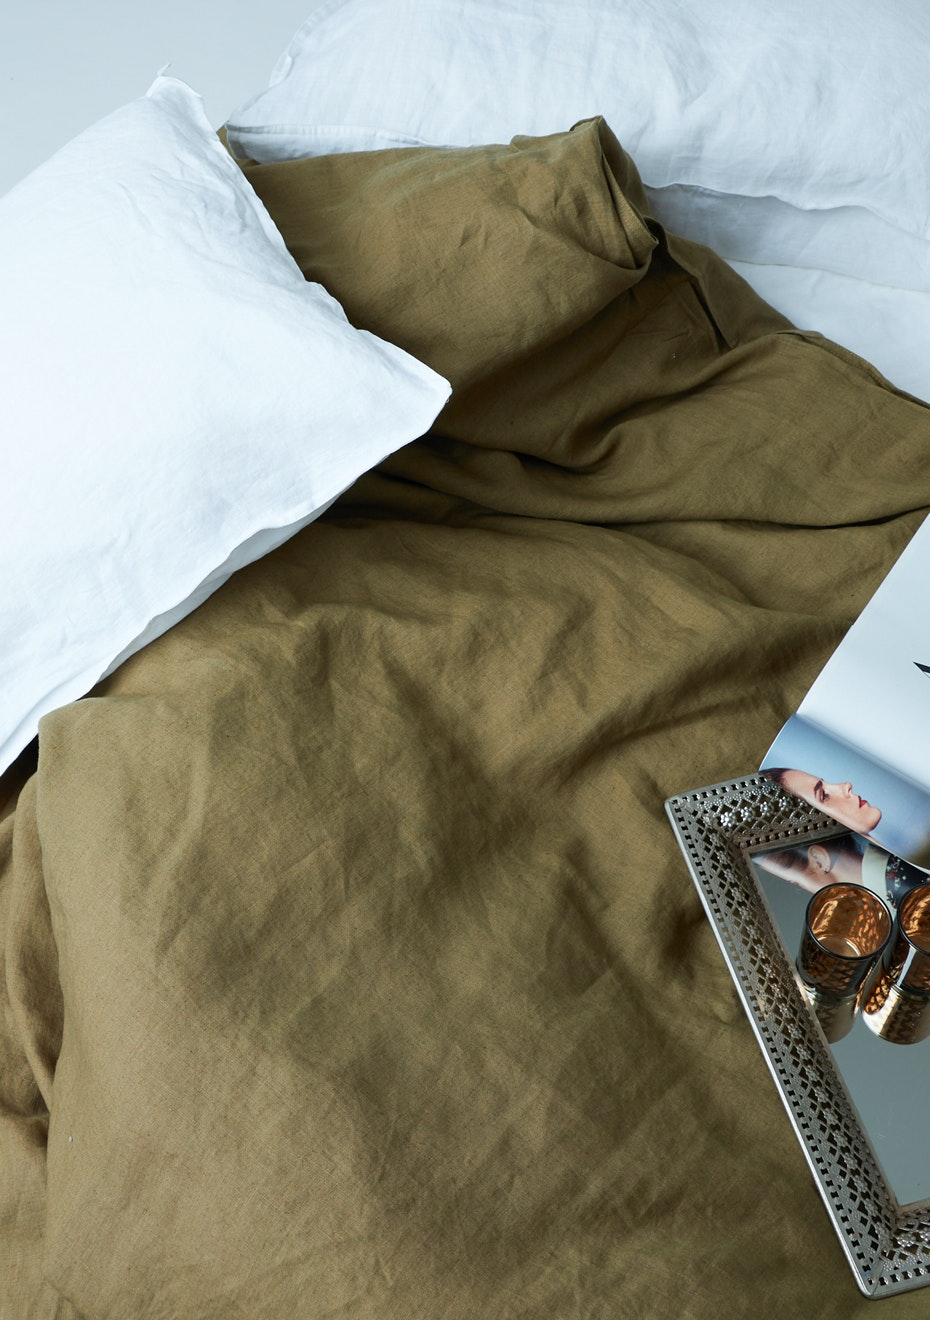 100 French Linen Duvet Cover Set Queen Olive Free Shipping 100 French Linen Bedding More Onceit